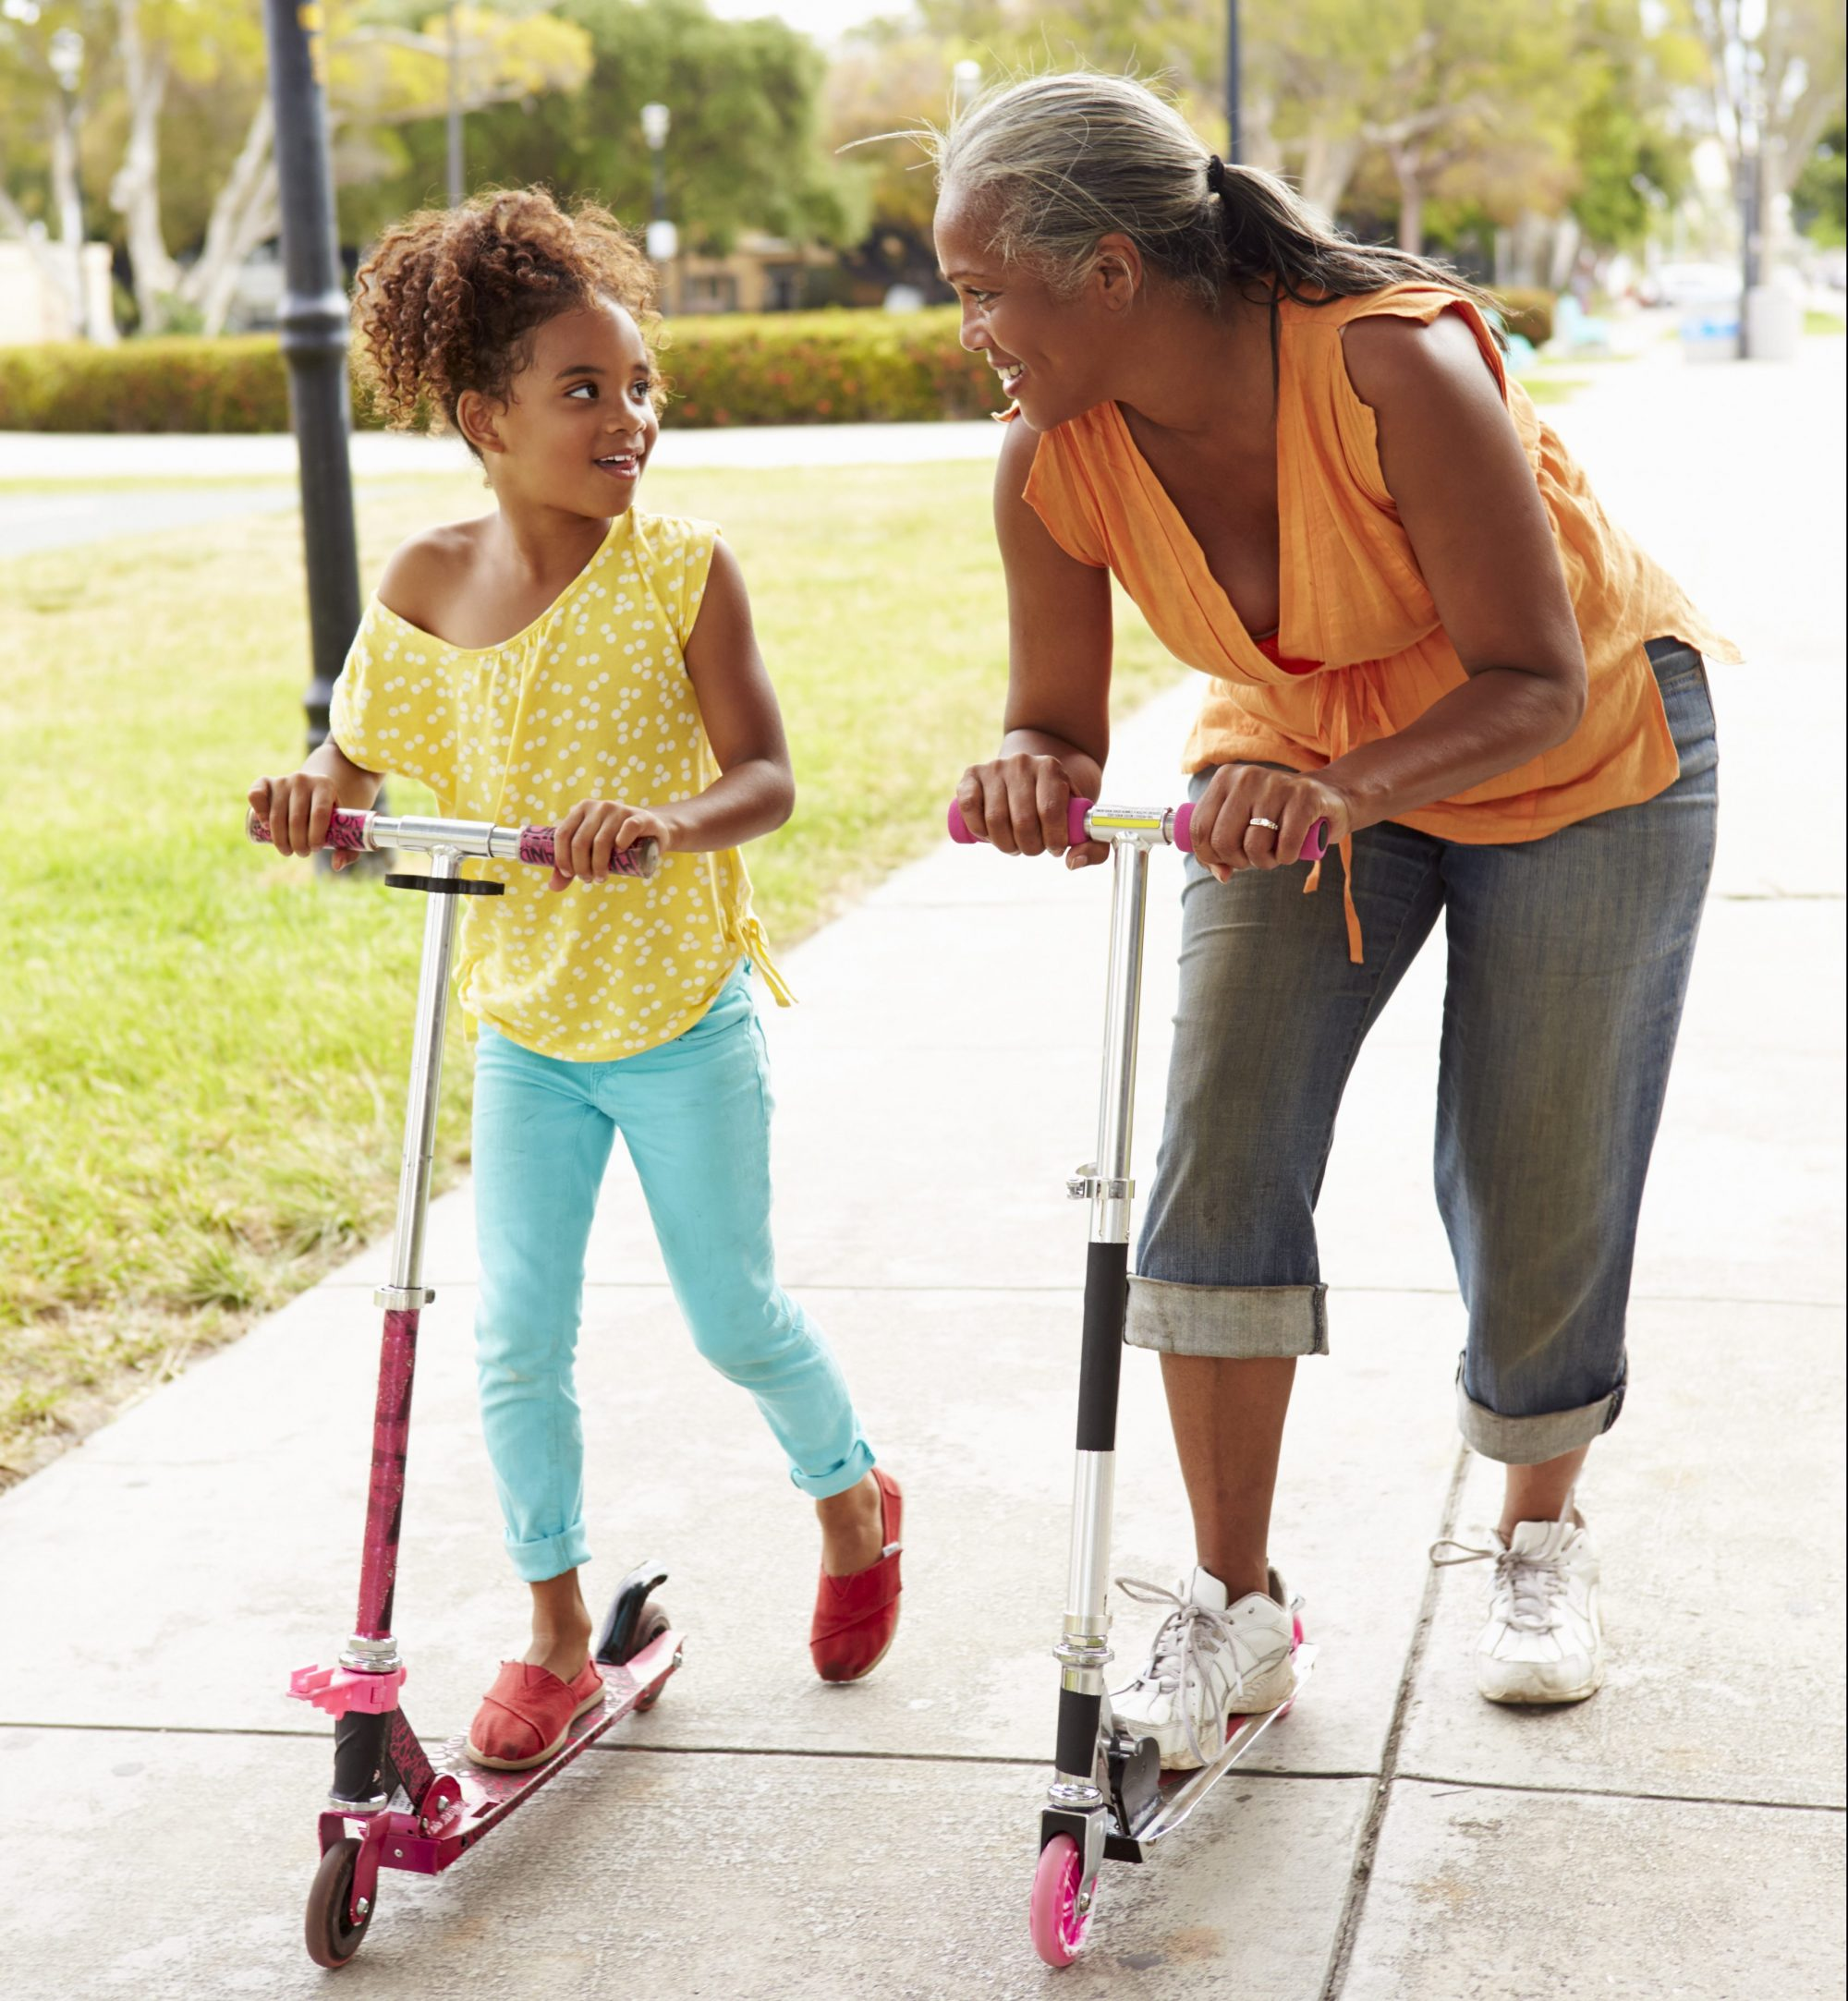 Grandmother And Granddaughter Riding Scooters In Park